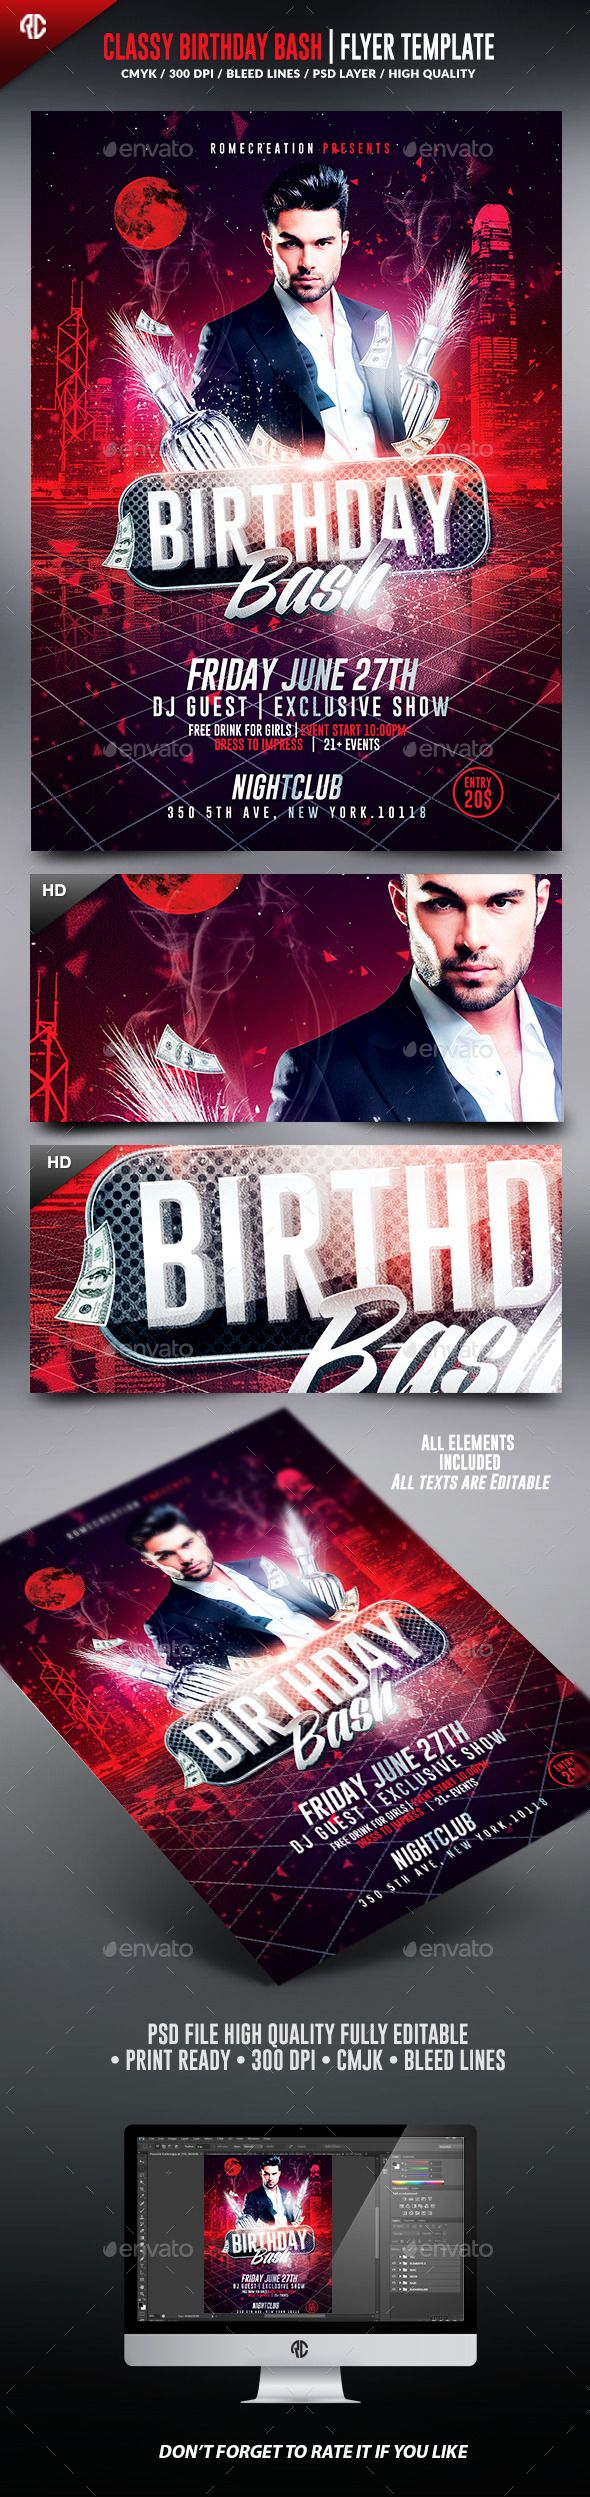 Birthday Bash  Classy Flyer Template  Flyer Template Birthday